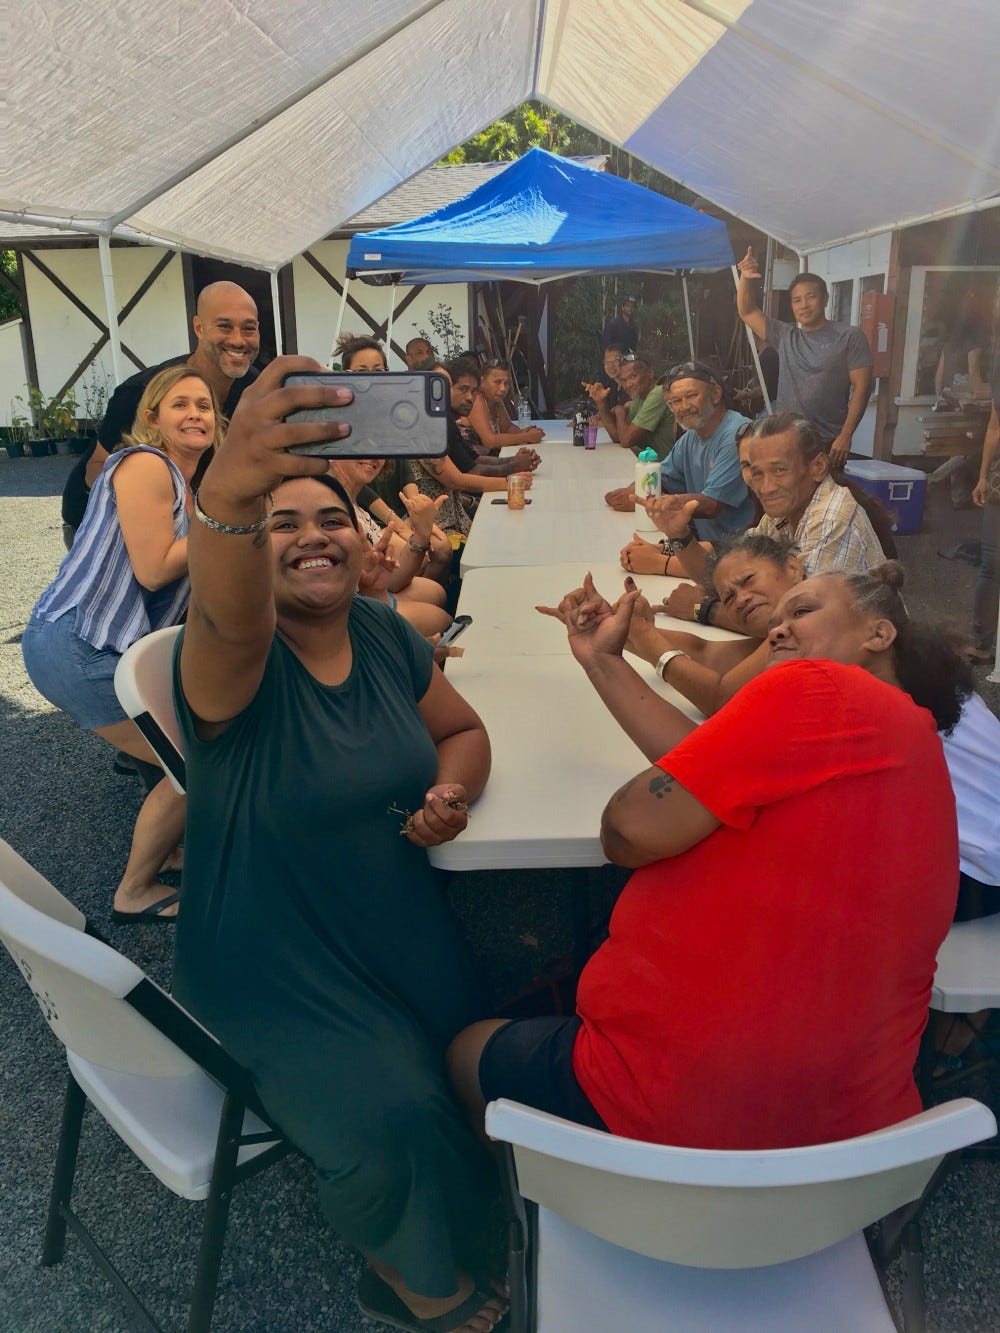 A group of people pose for a selfie around a table, throwing shakas.